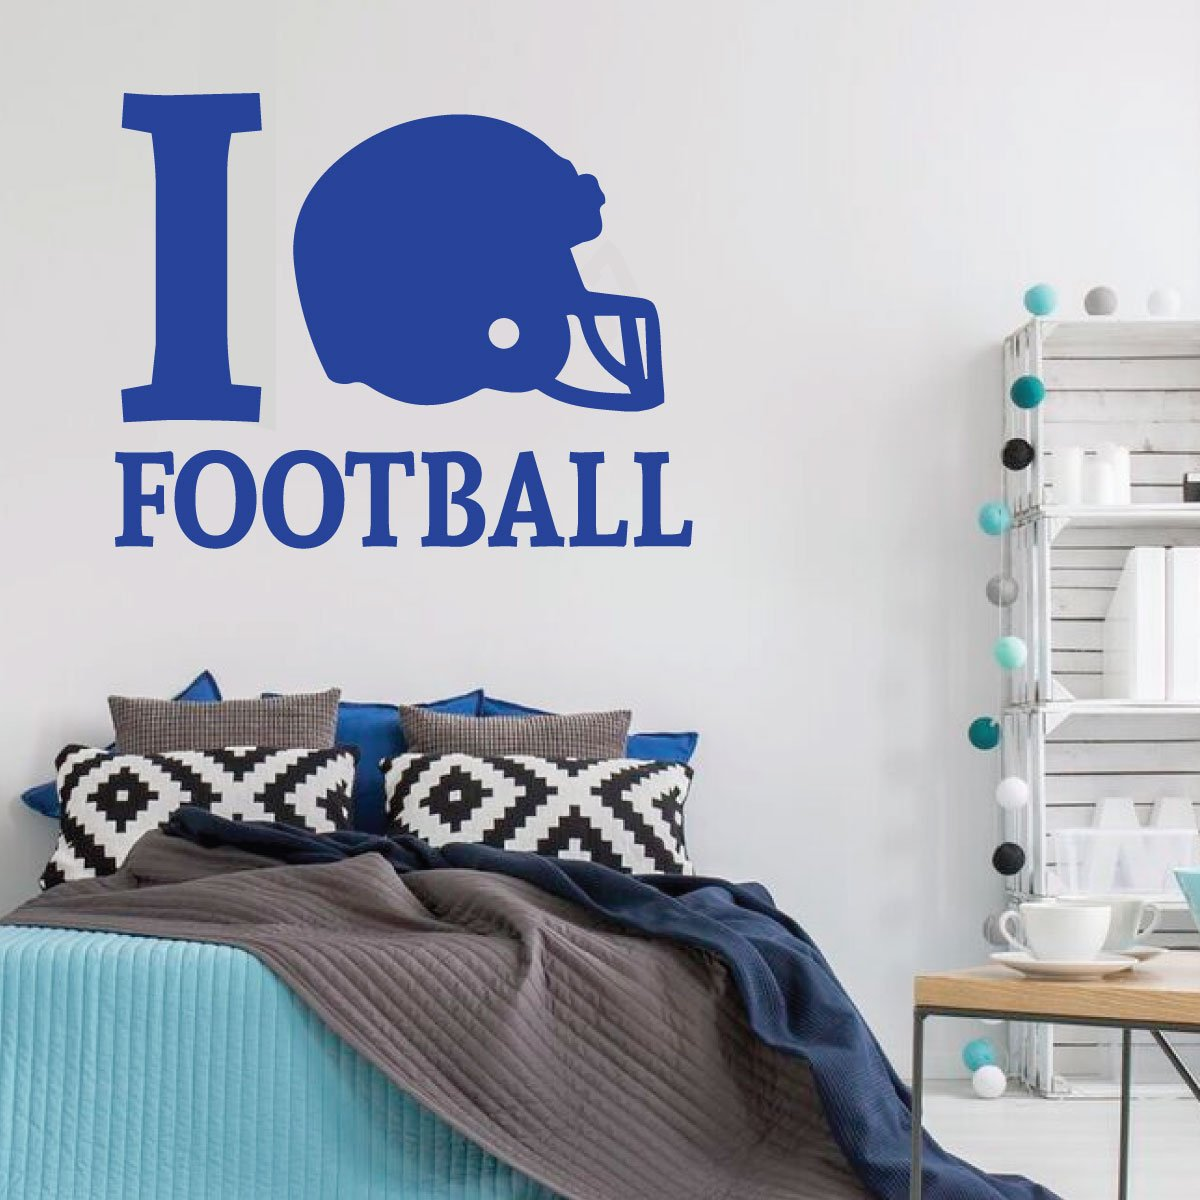 Football Wall Decal I Vinyl Decor Wall Decal